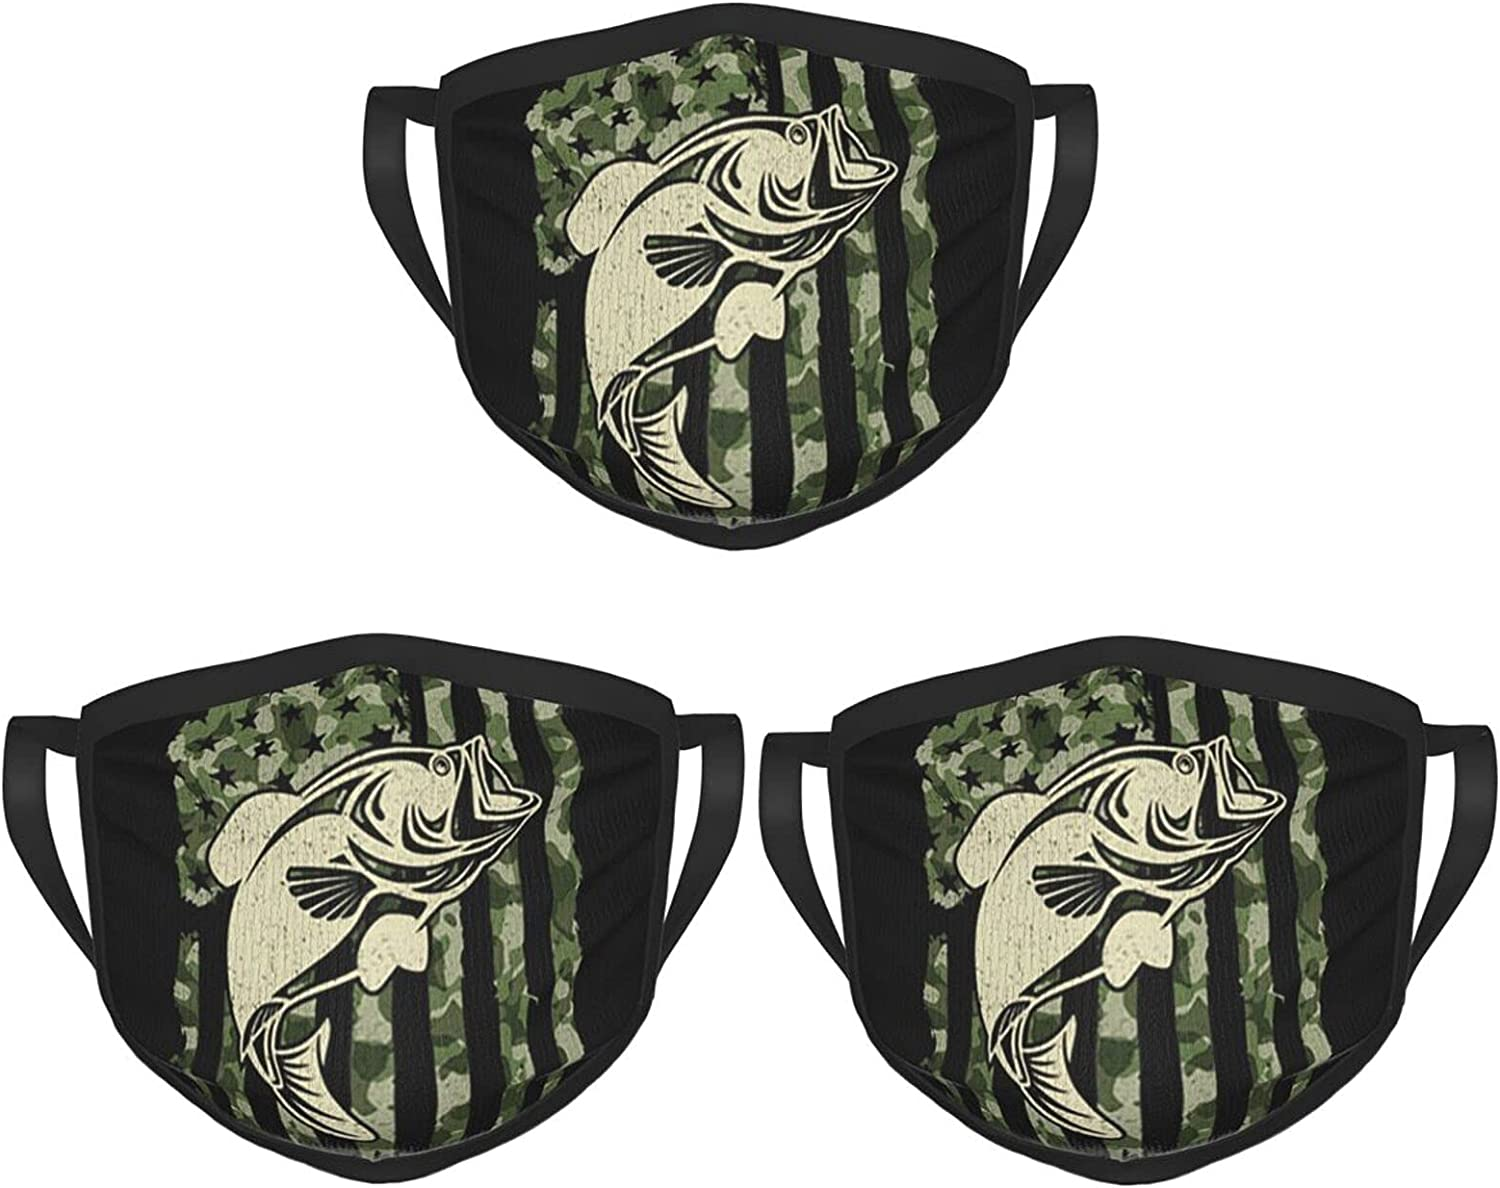 Balaclava Earmuffs American Flag Camouflage Bass Fishing Face Mouth Cover Mask Reusable Windproof Scarf Towel Cover Headwrap